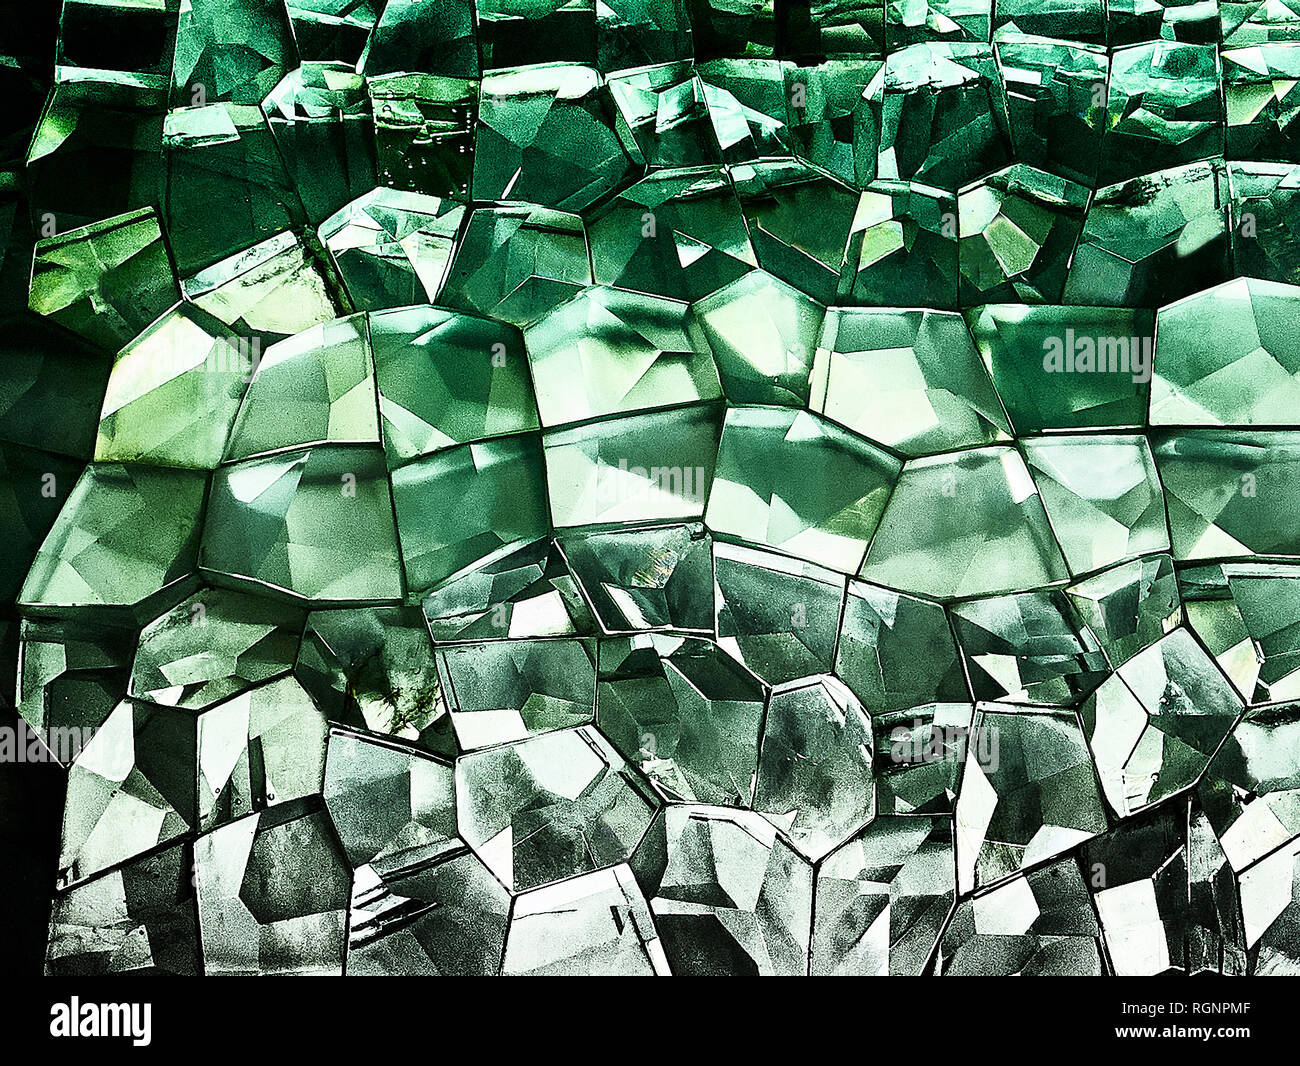 Close-up of a mosaic of retro style green colored, 3 dimensional looking glass cubicals glued to each other with light shining through - Stock Image